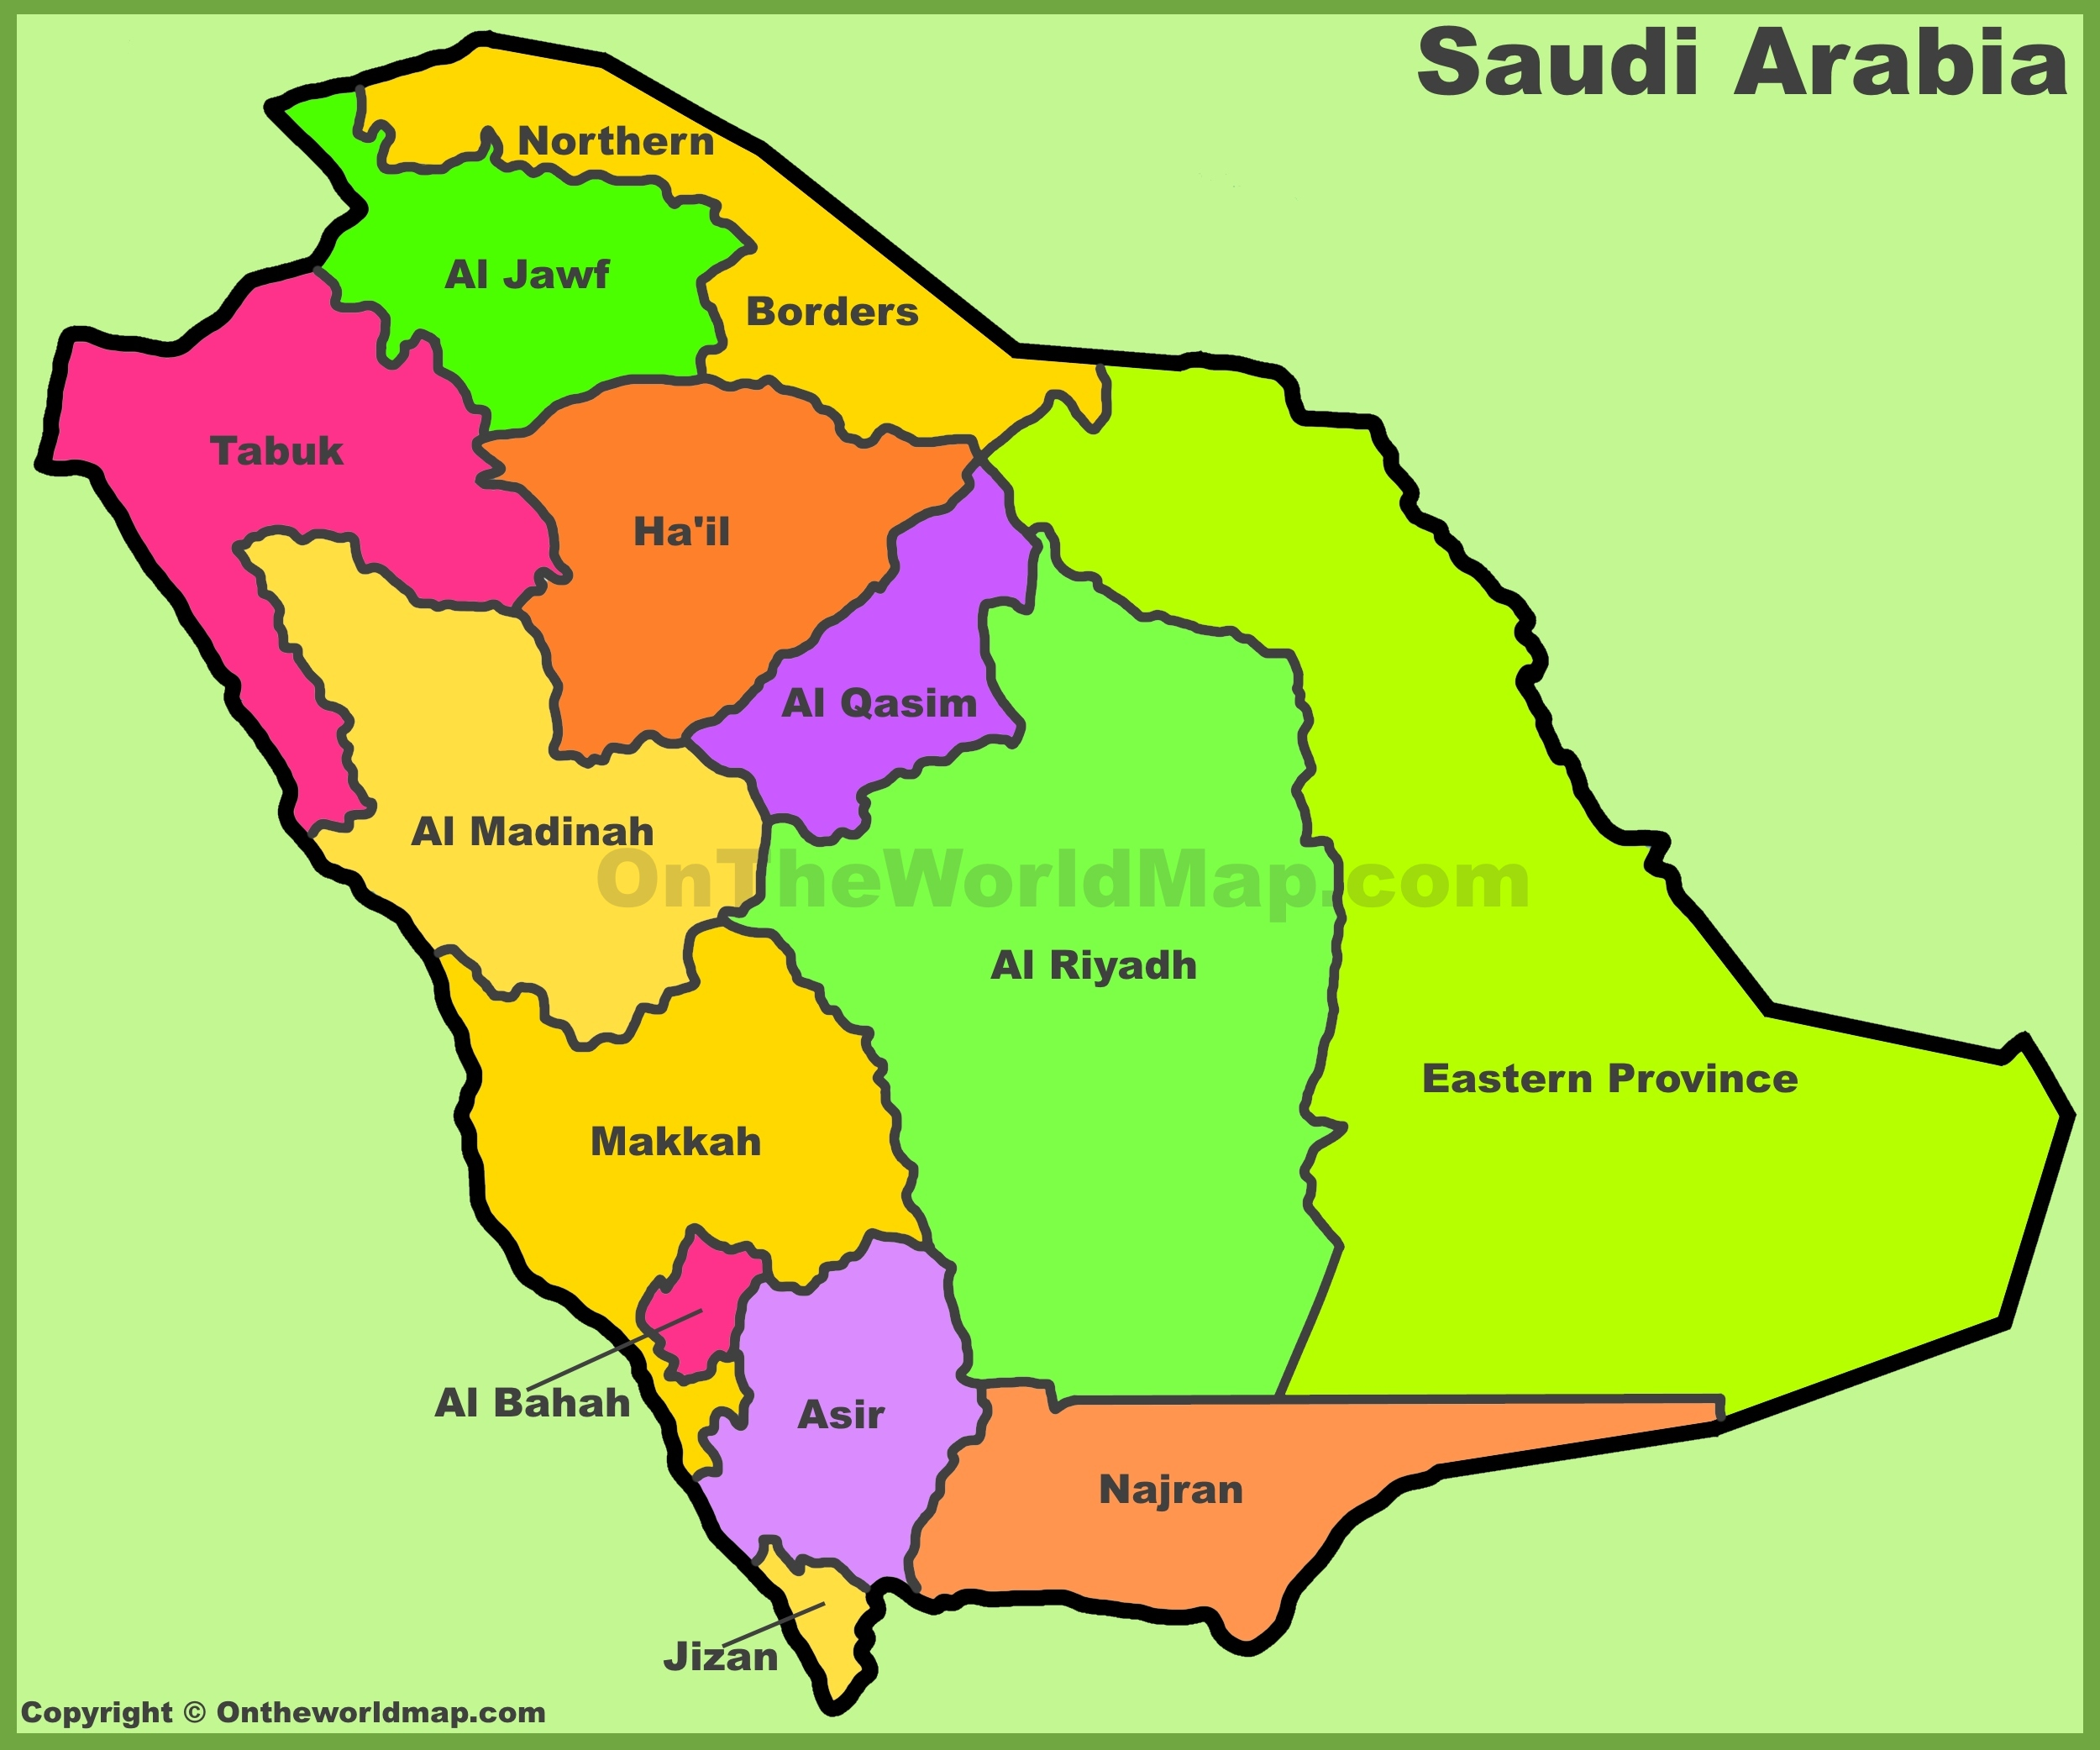 Saudi Arabian Maps | Maps of Saudi Arabian